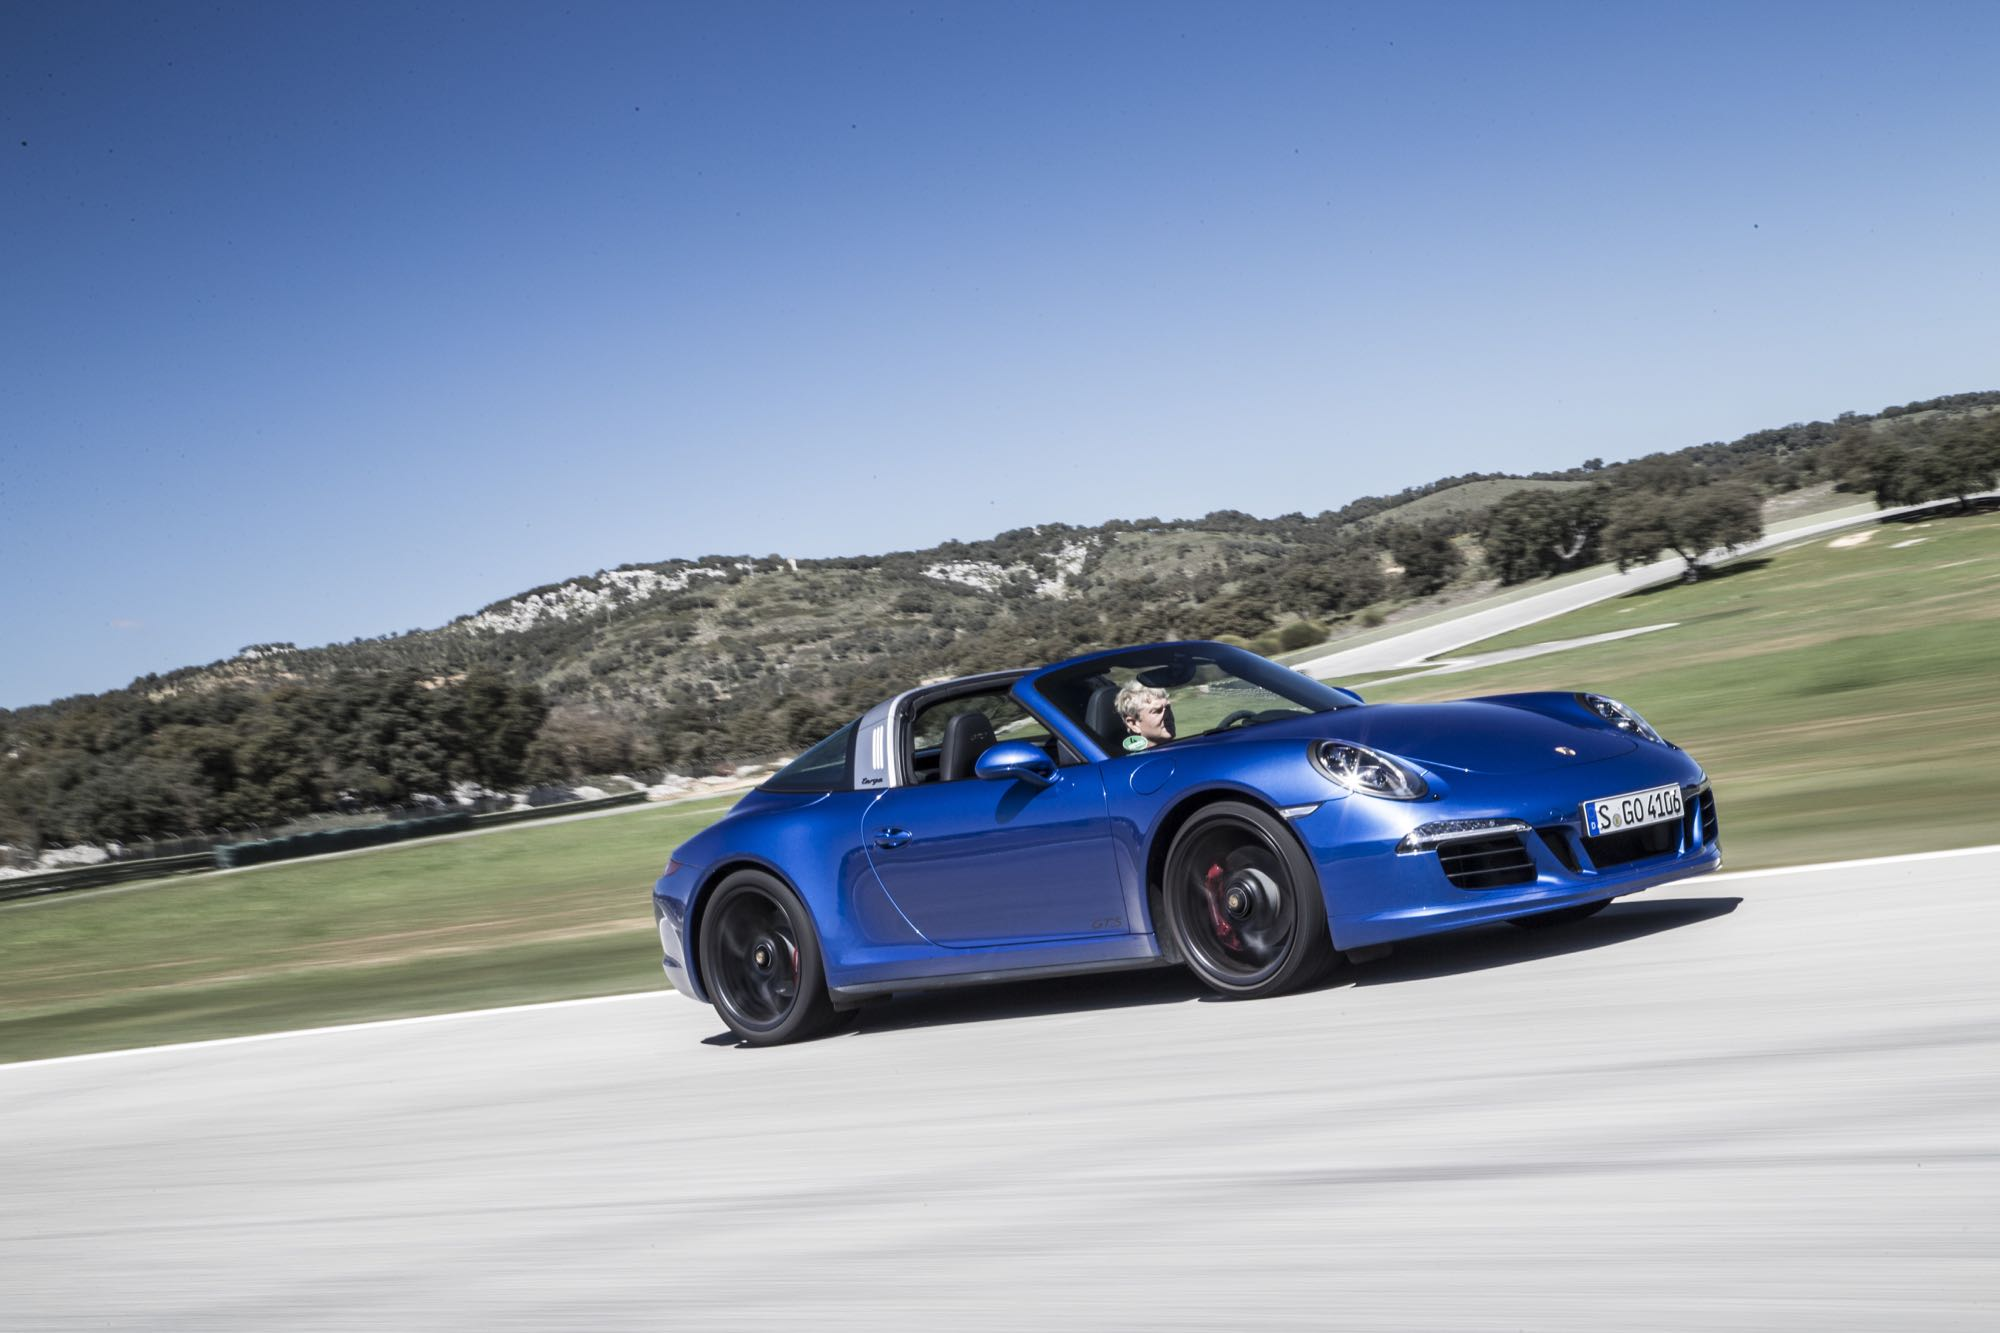 2015 Porsche 911 Targa 4 GTS Review - photos | CarAdvice